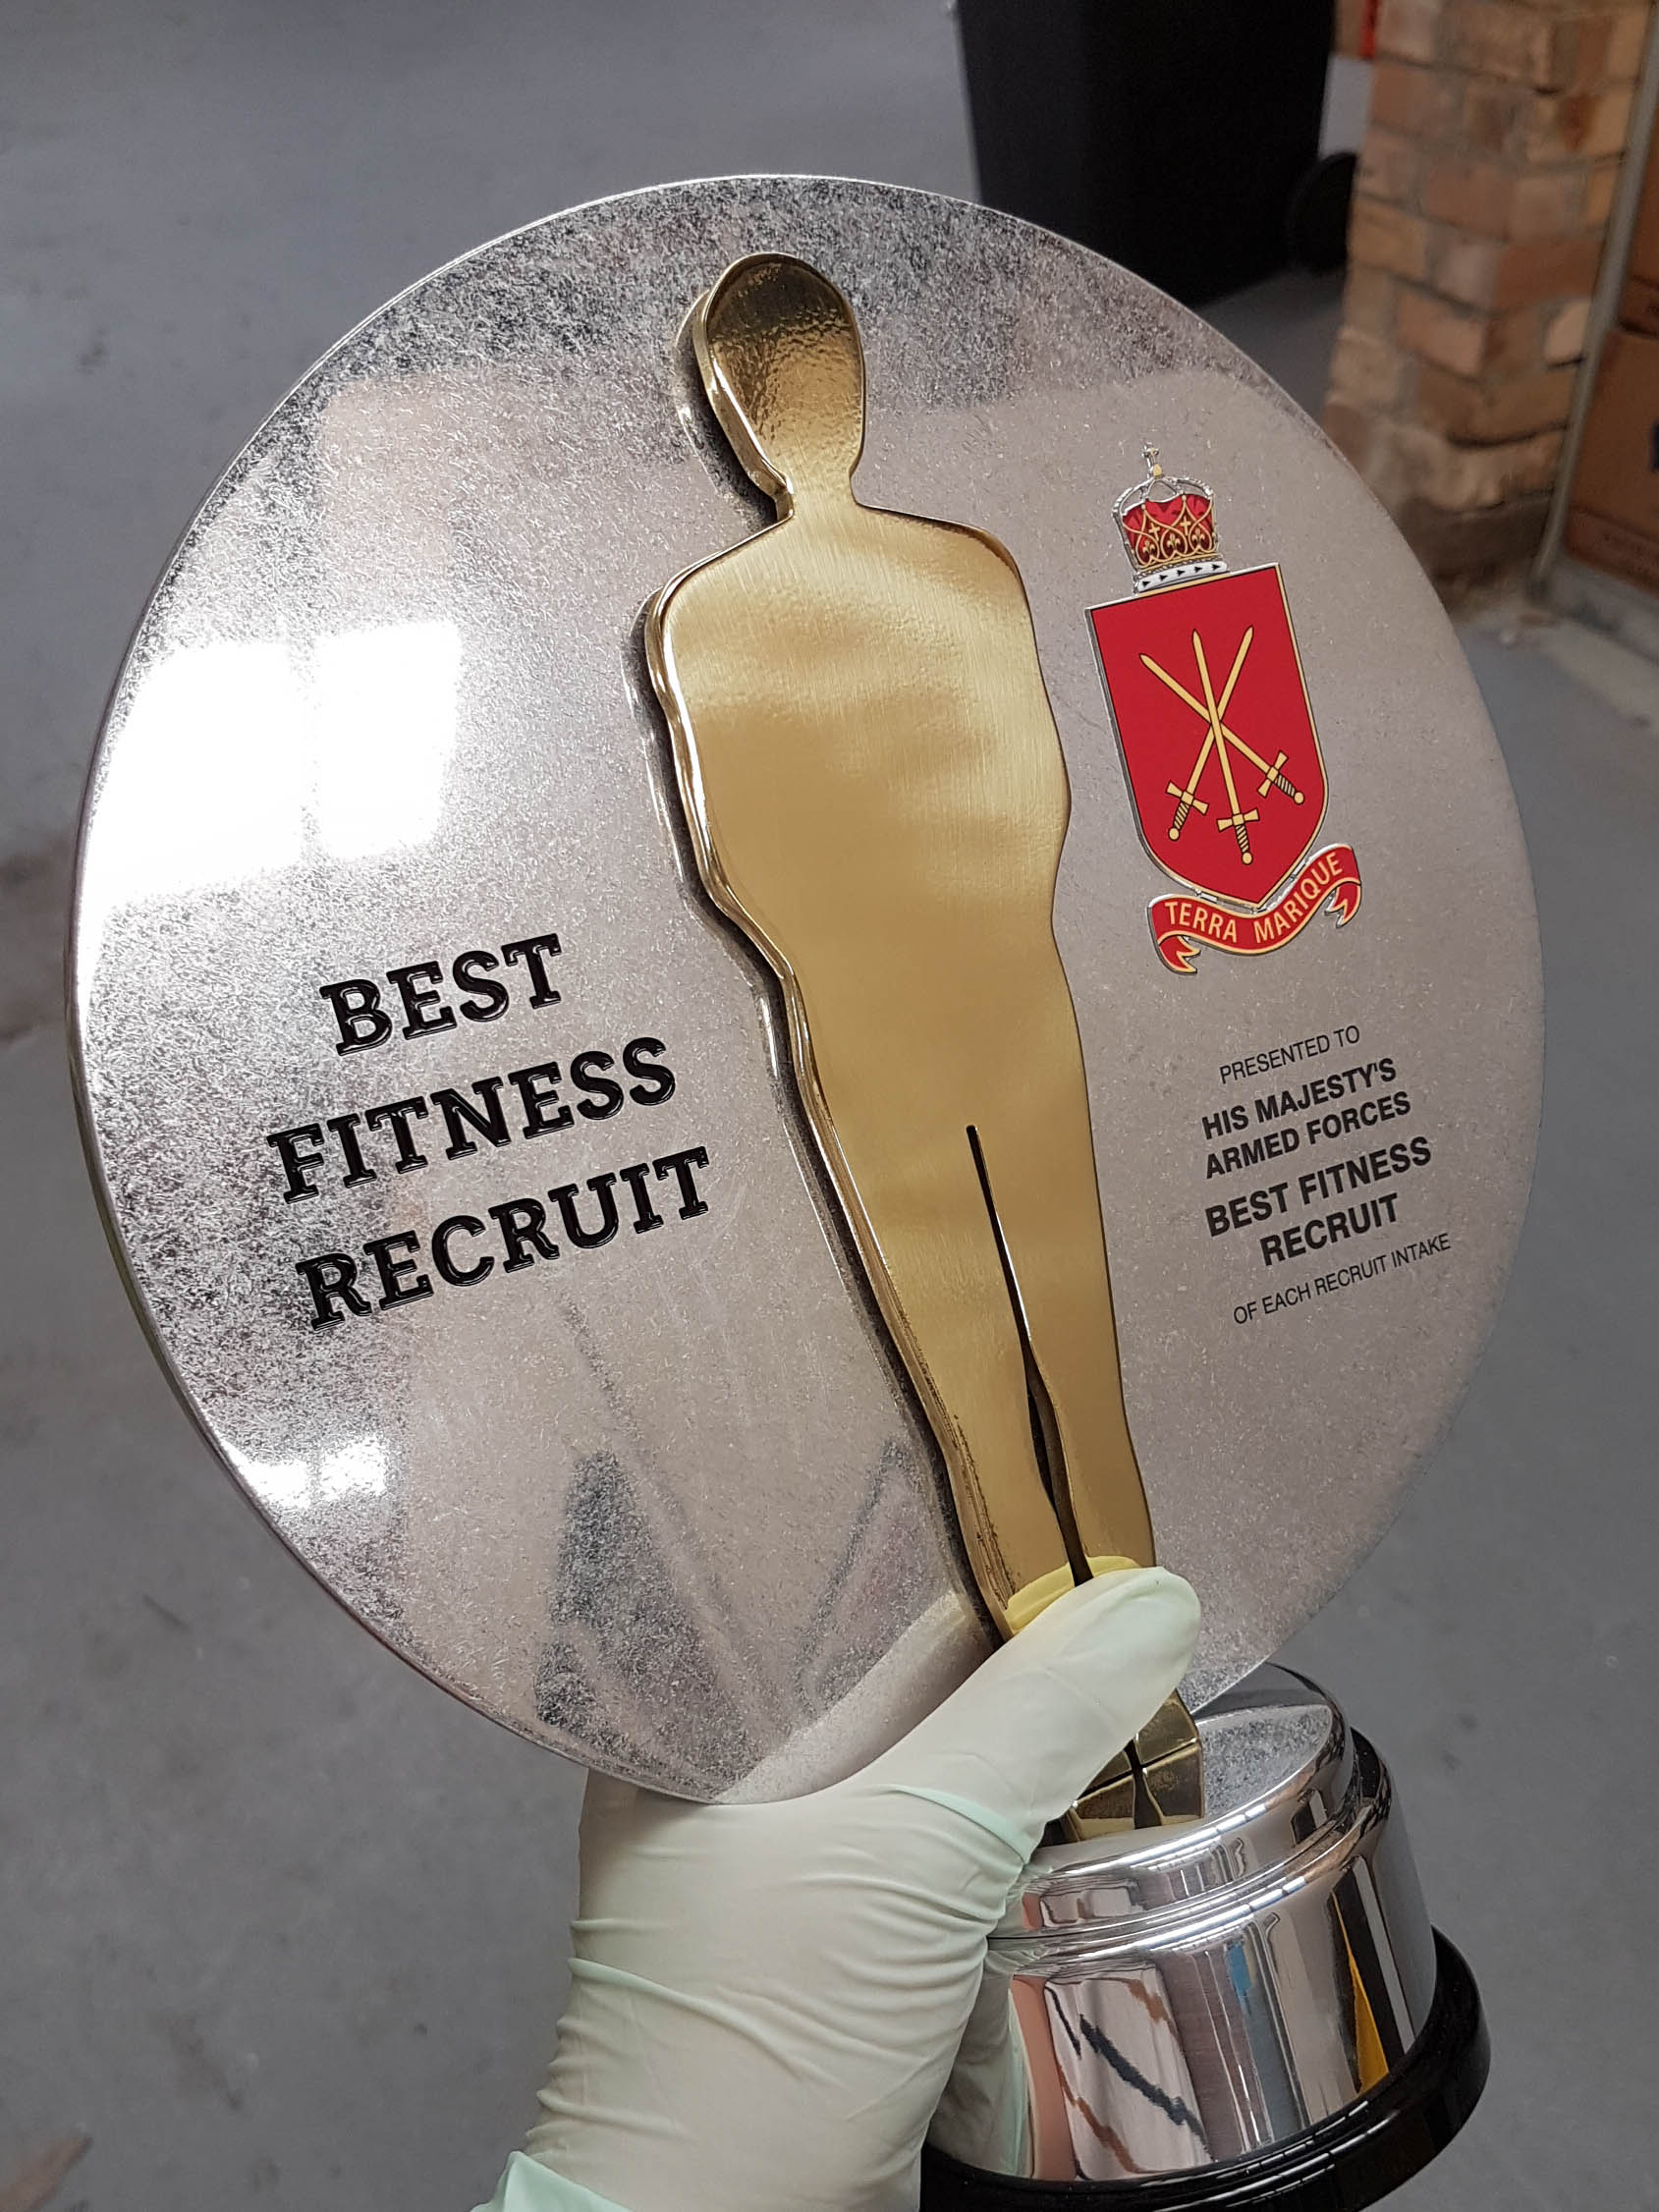 Making the HMAF Best Fitness Recruit Award